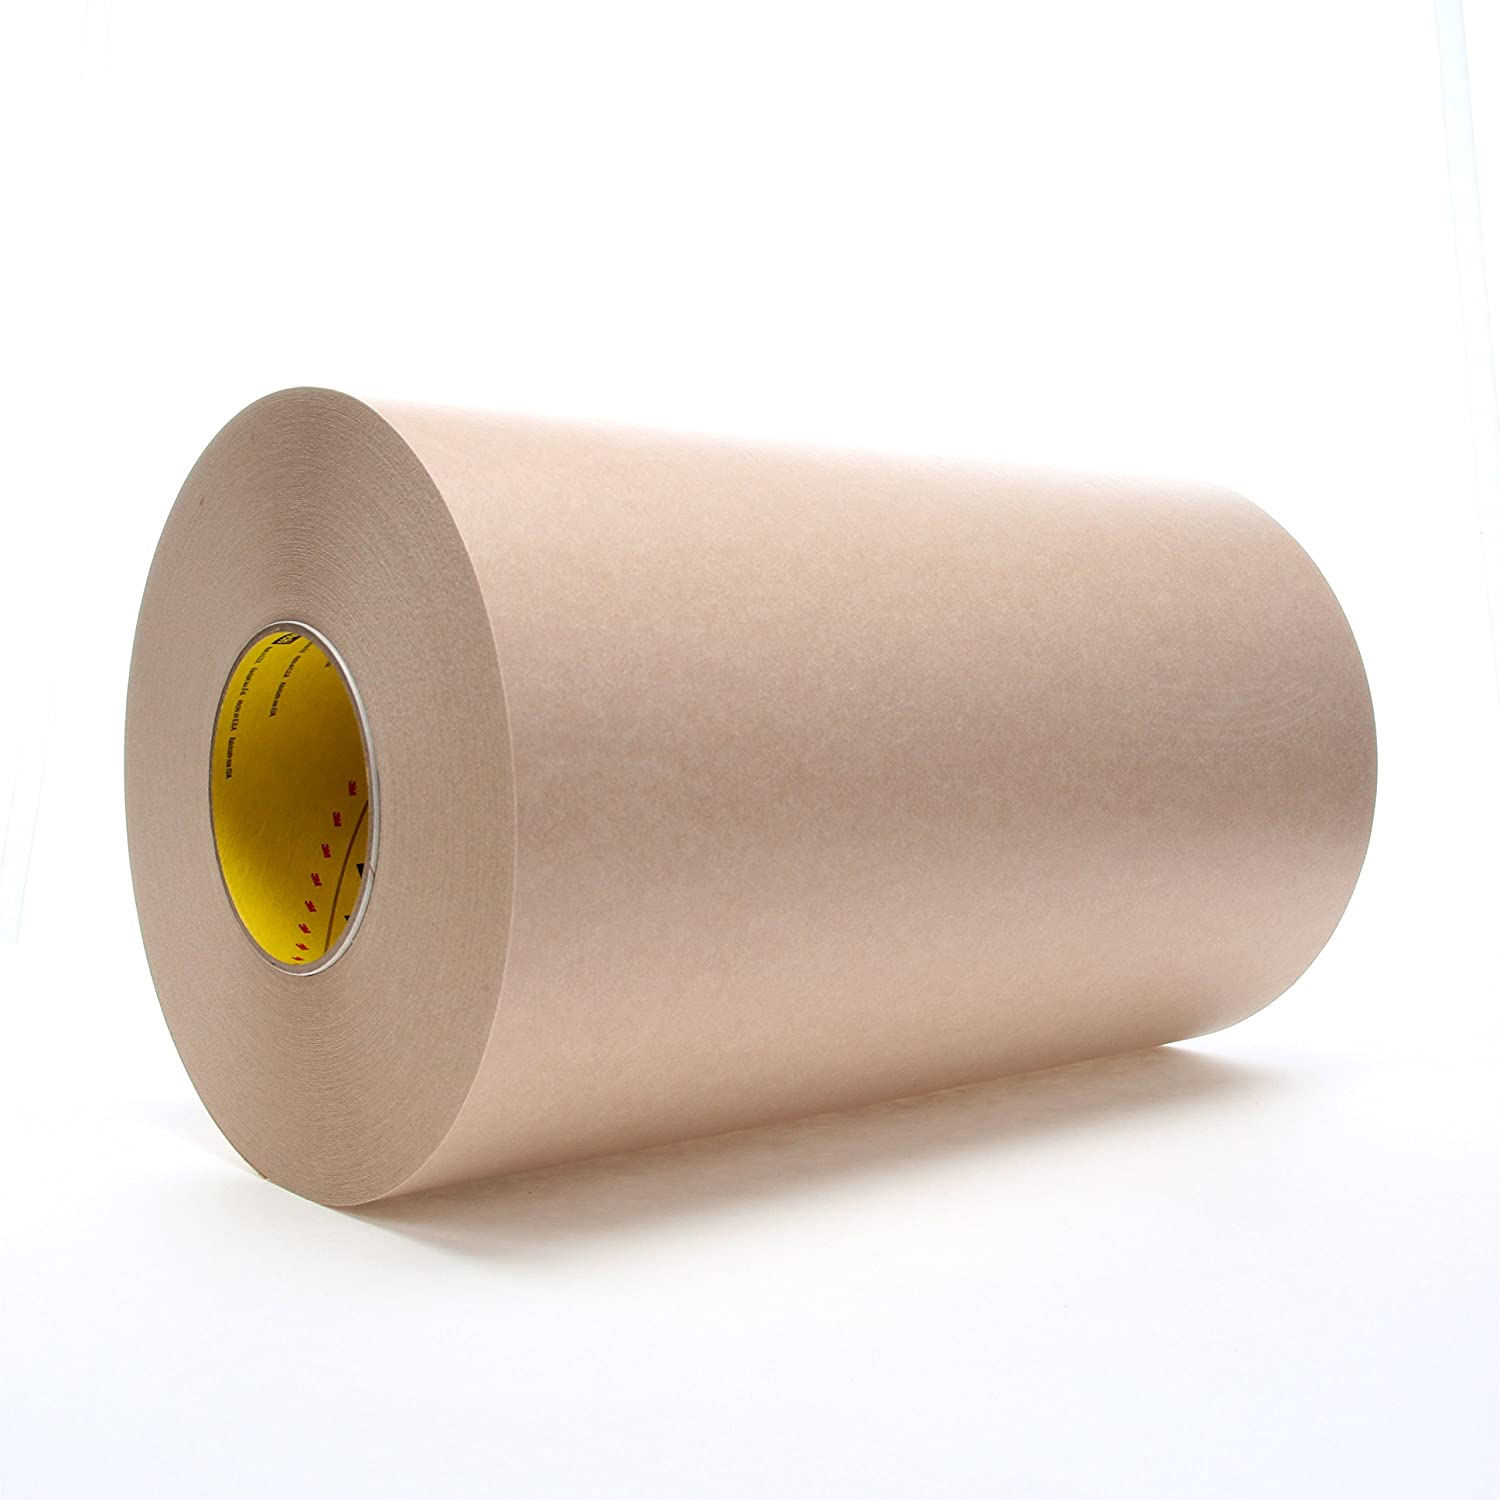 Image of 3M 16941-case Protective Tape 346 1 in x 60 yd 16.7 mil, 346, Flat Paper Stock, Tan (Pack of 36) First Aid Tape